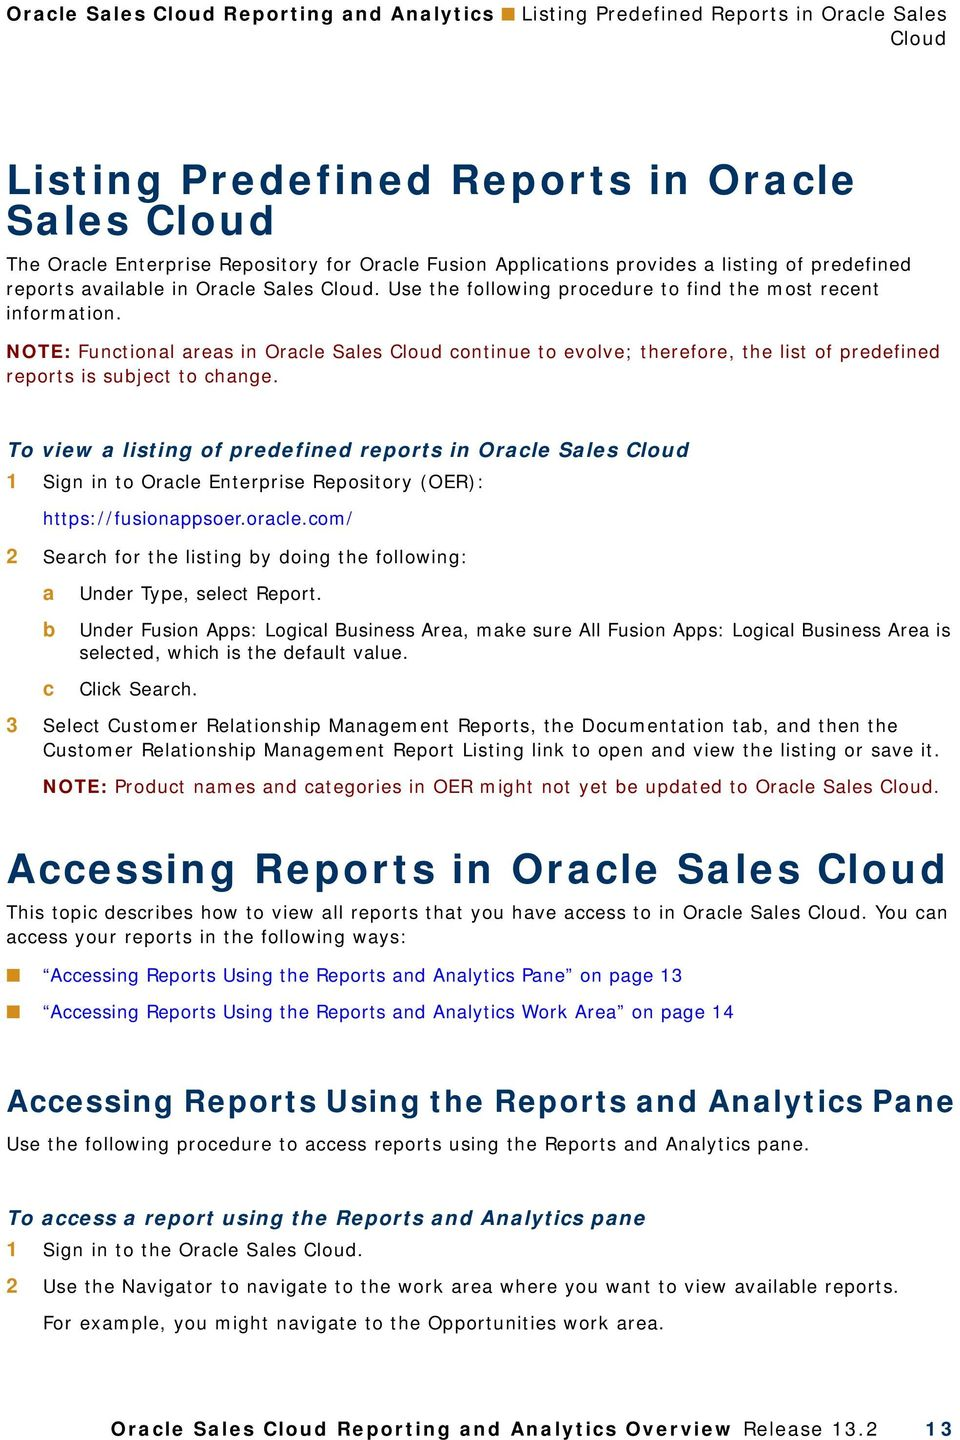 NOTE: Functional areas in Oracle Sales Cloud continue to evolve; therefore, the list of predefined reports is subject to change.